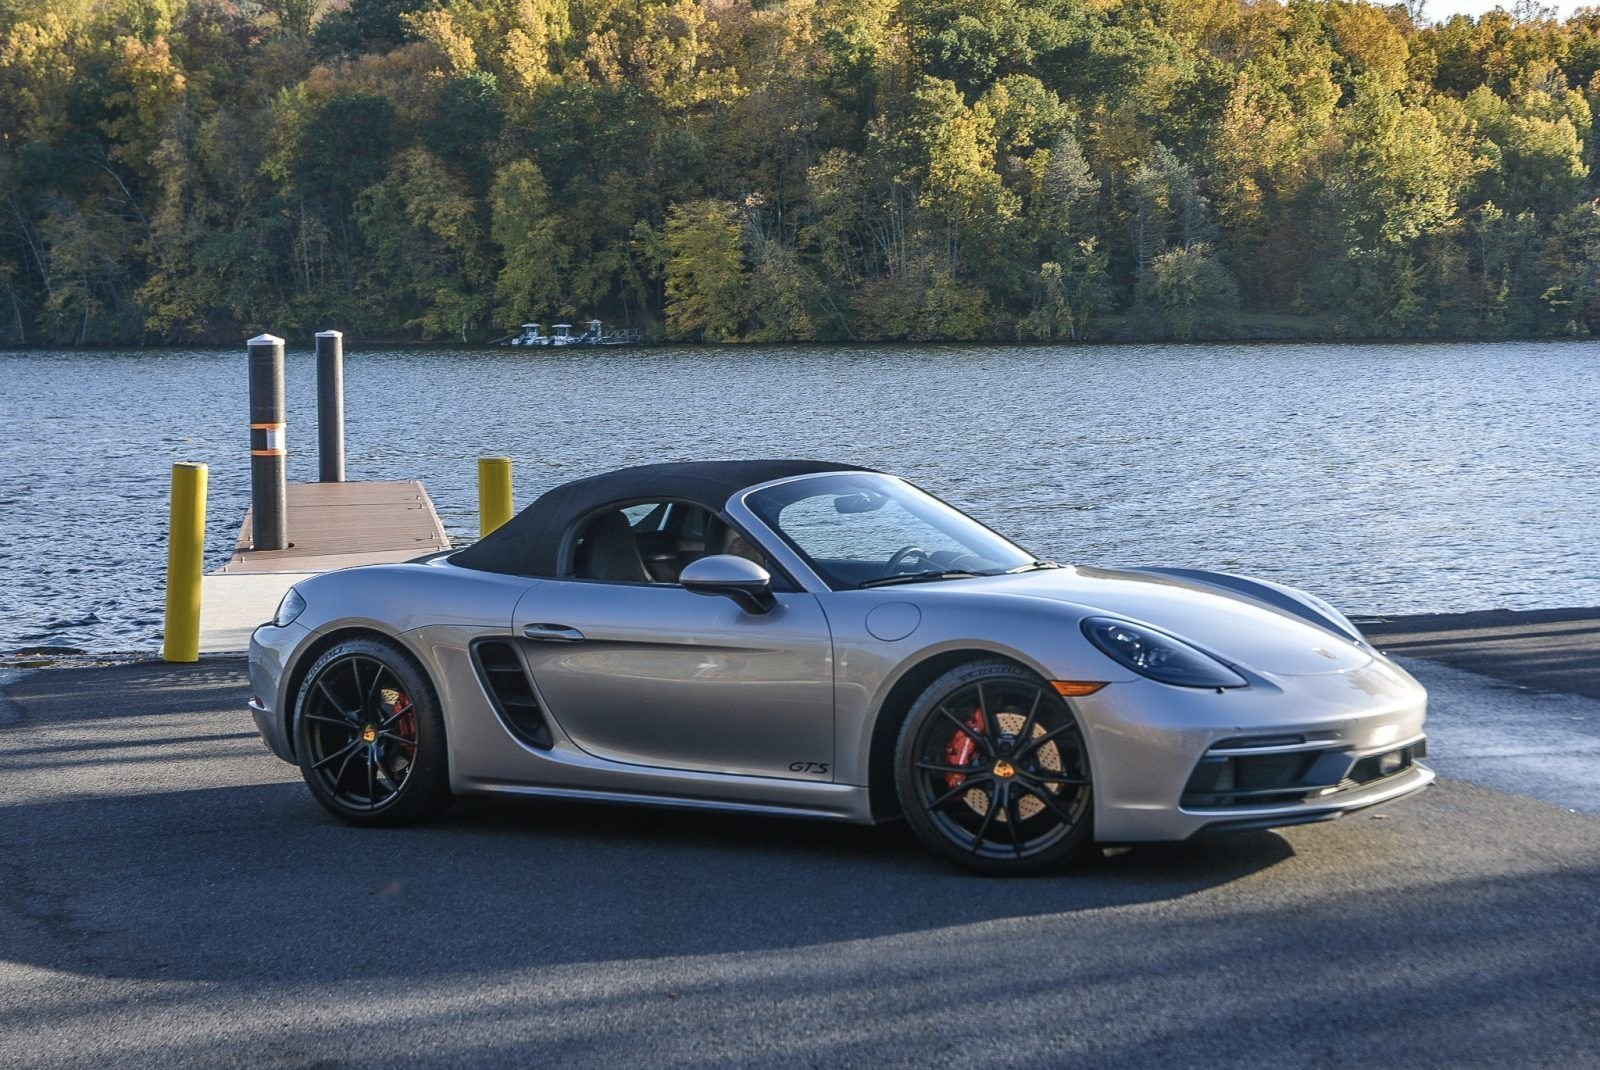 2019 Porsche 718 Boxster GTS - Manual 9.9k miles Silver $ For Sale (picture 2 of 6)